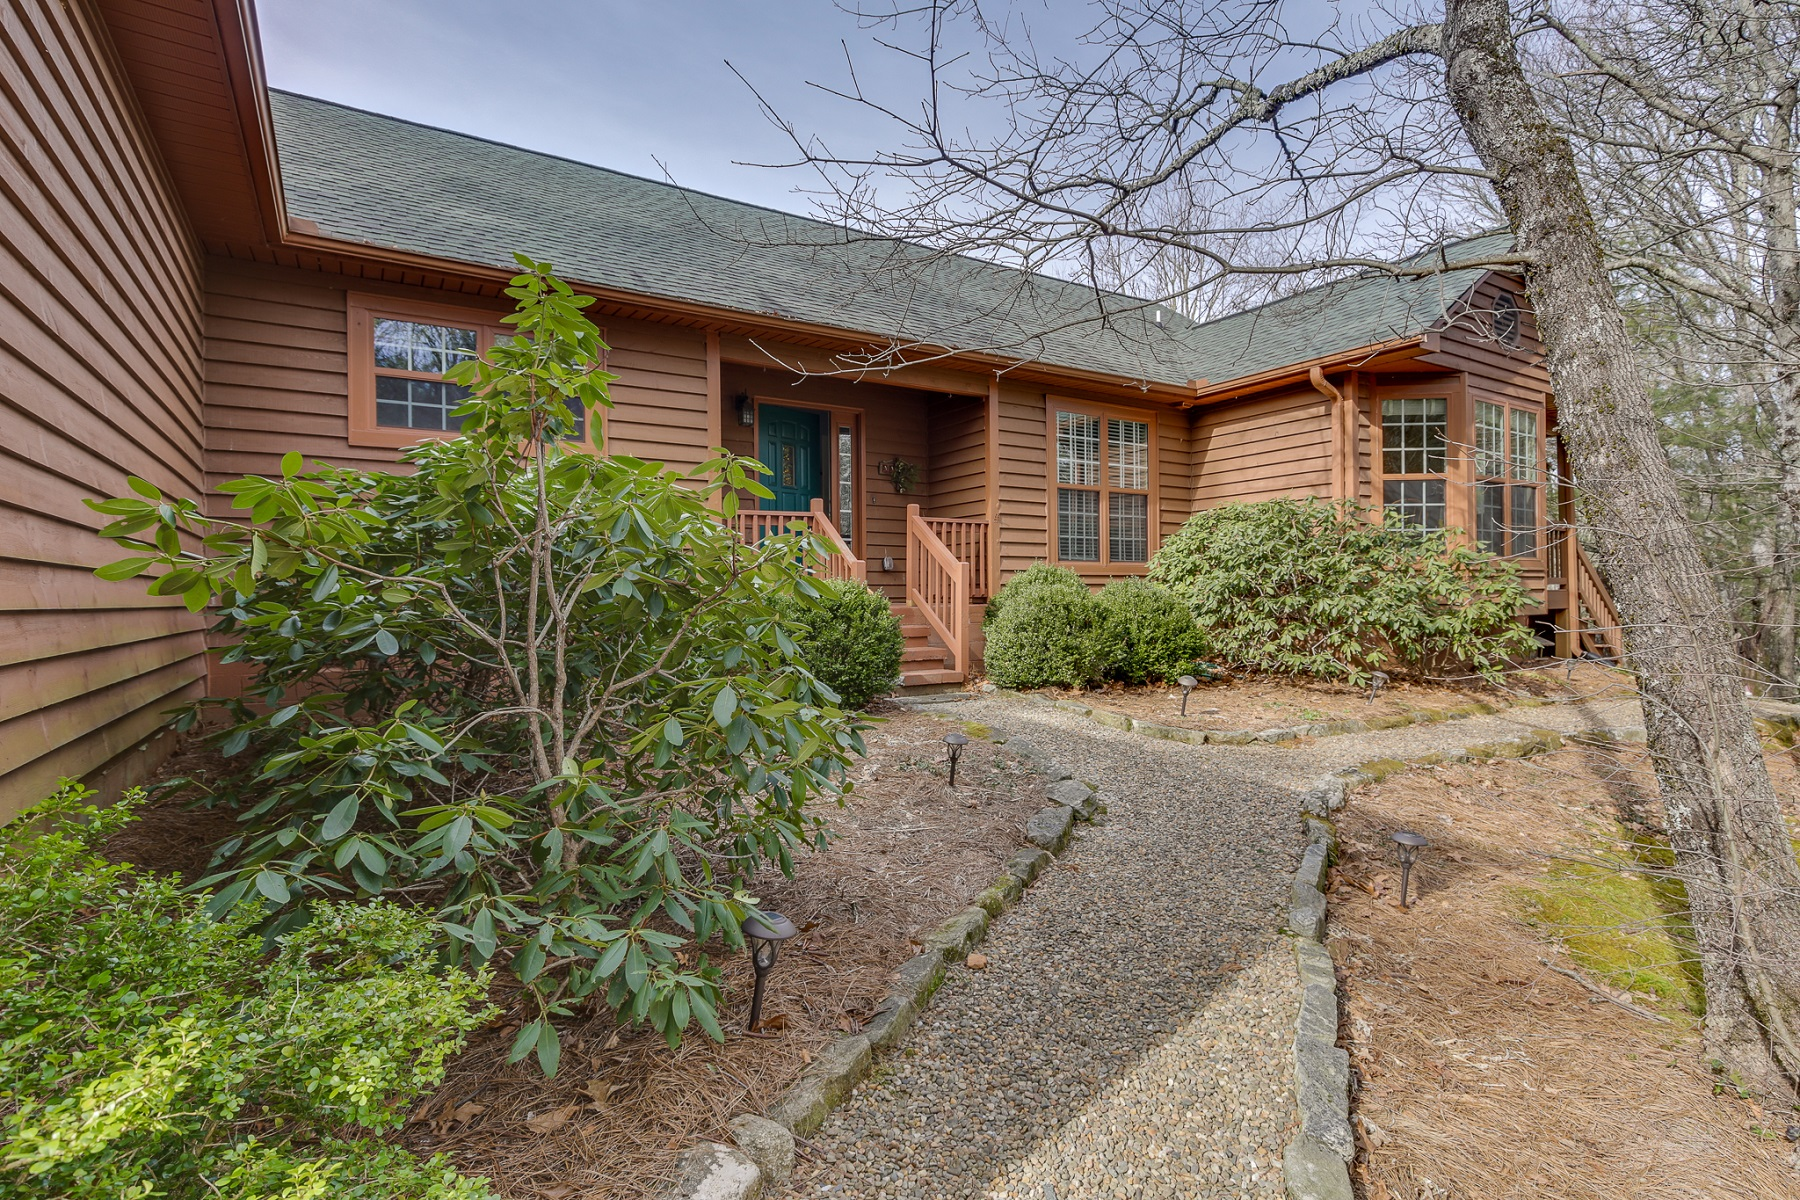 Single Family Homes for Active at 77 Blueberry Road Scaly Mountain, North Carolina 28775 United States